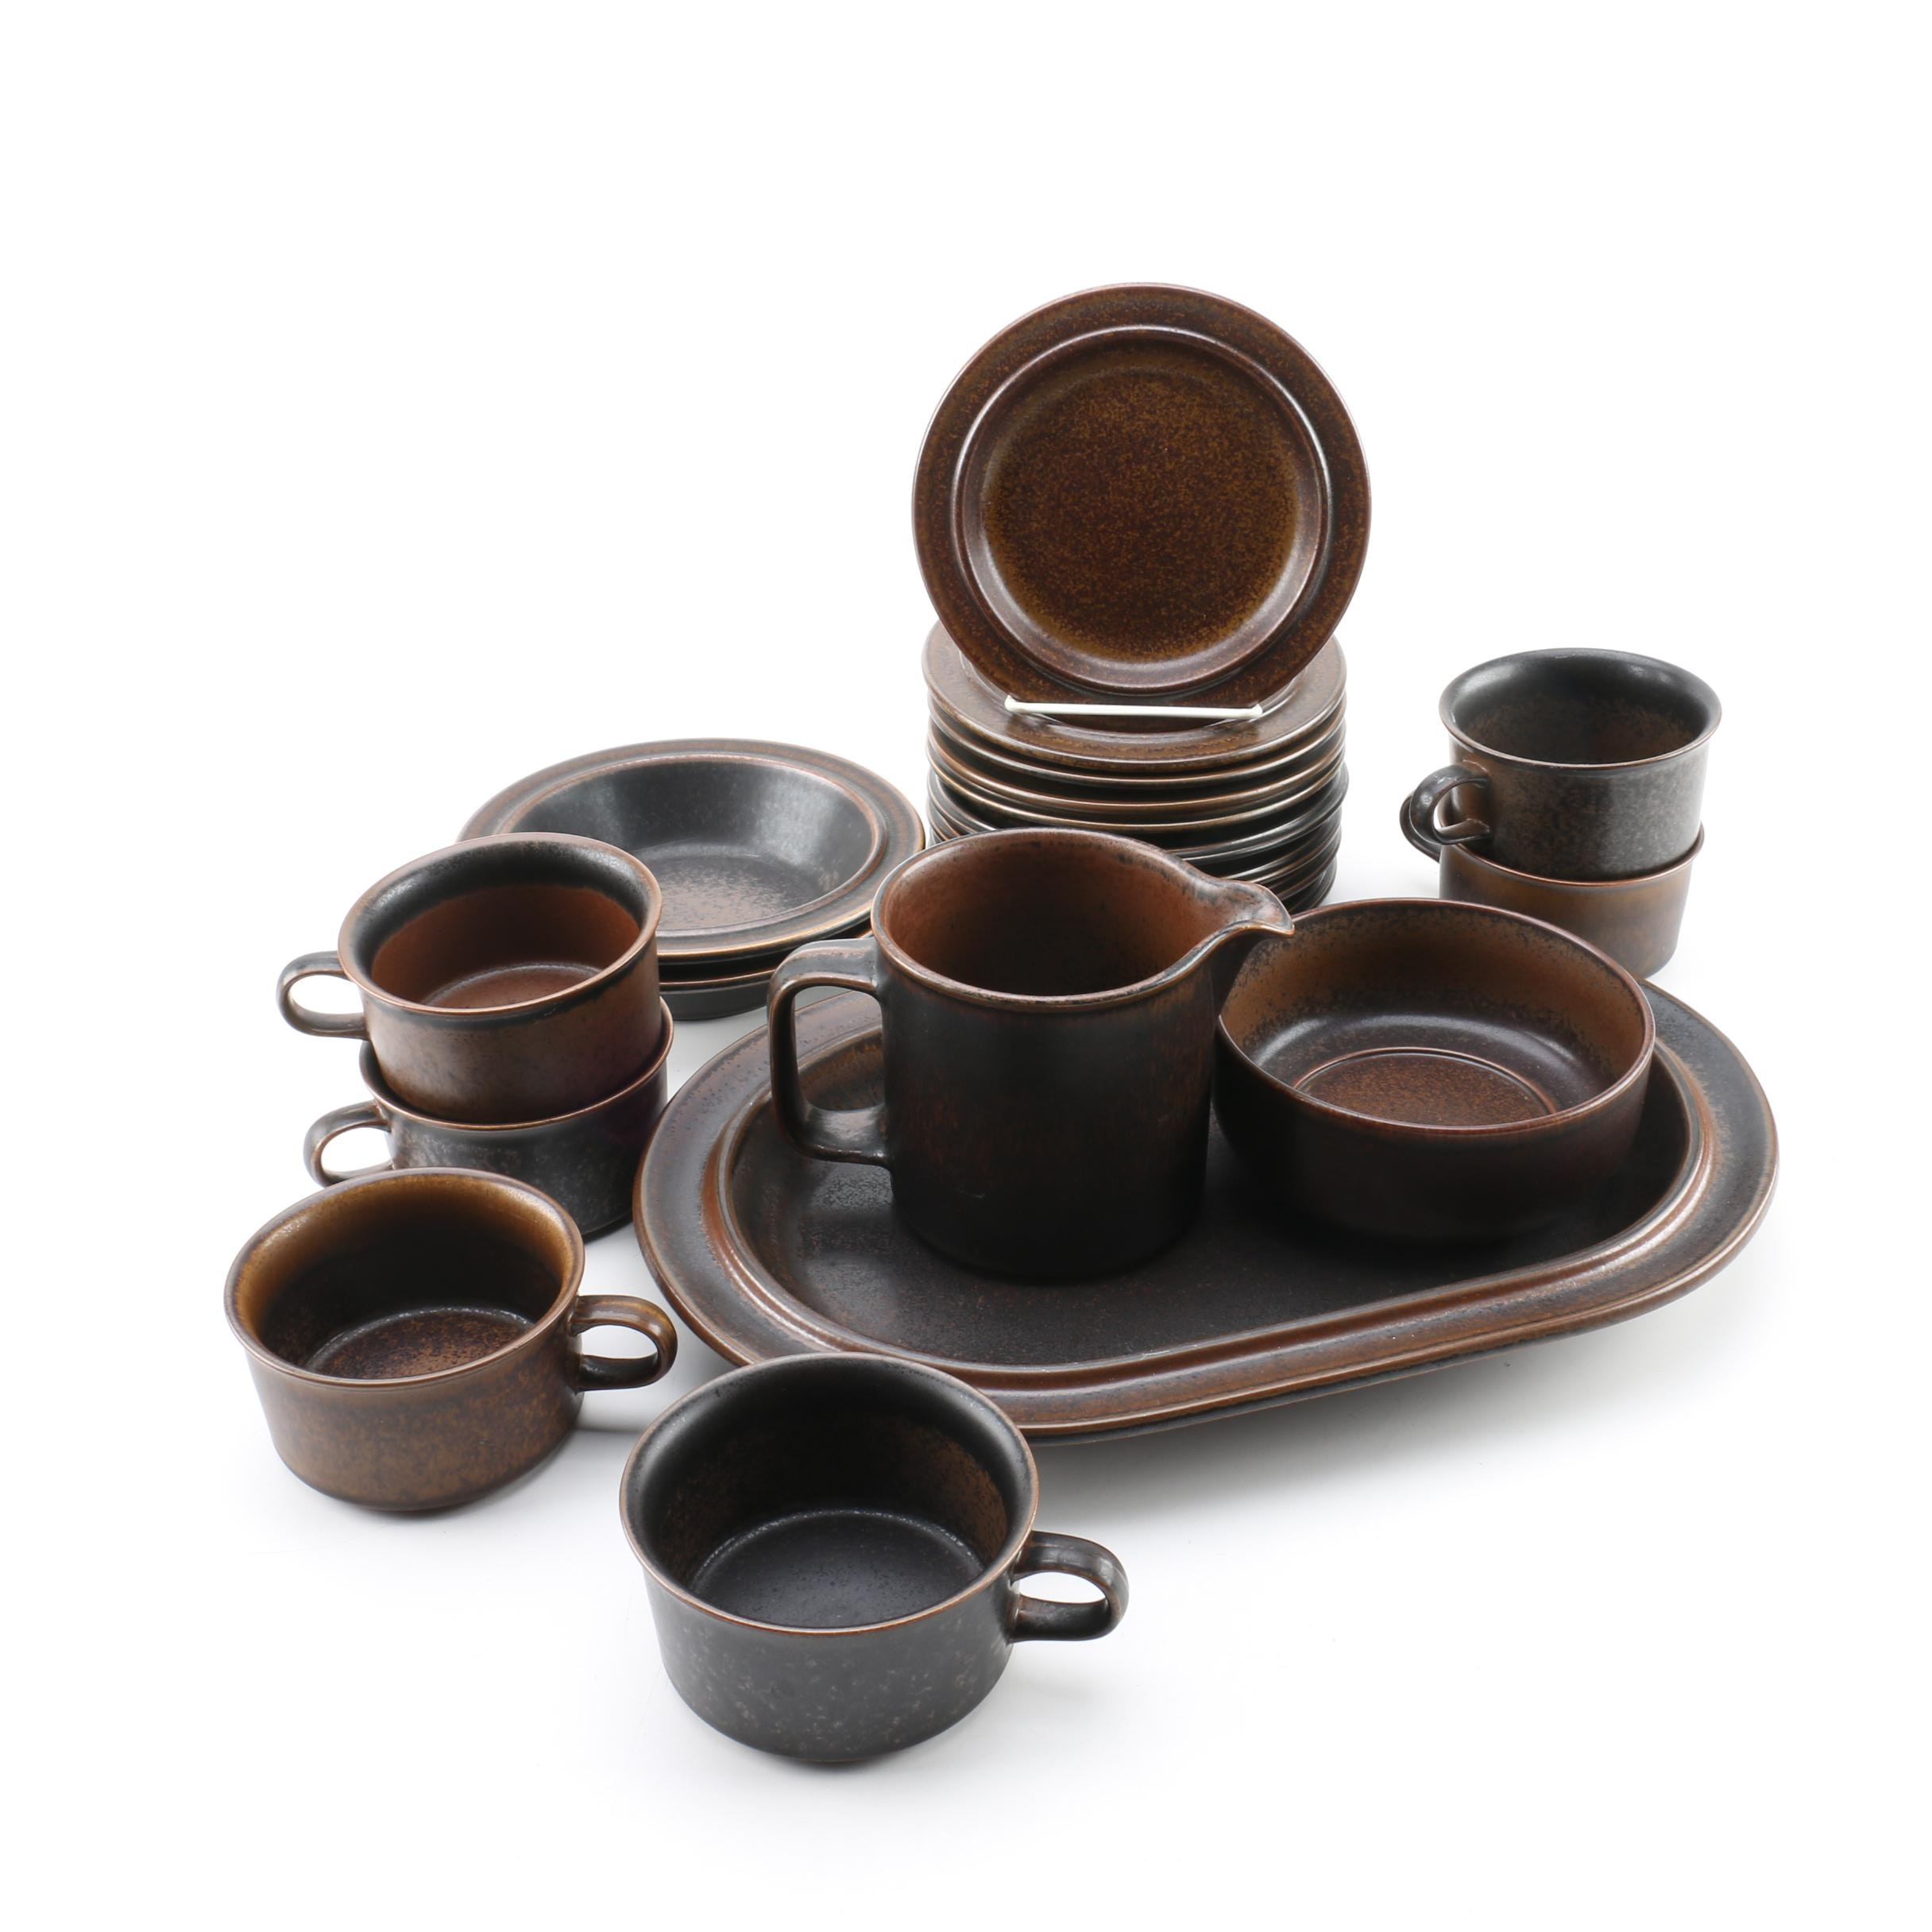 Arabia  Ruska  Variegated Brown Glazed Stoneware Serving Dishes and Tableware ...  sc 1 st  EBTH.com : ruska dinnerware - pezcame.com